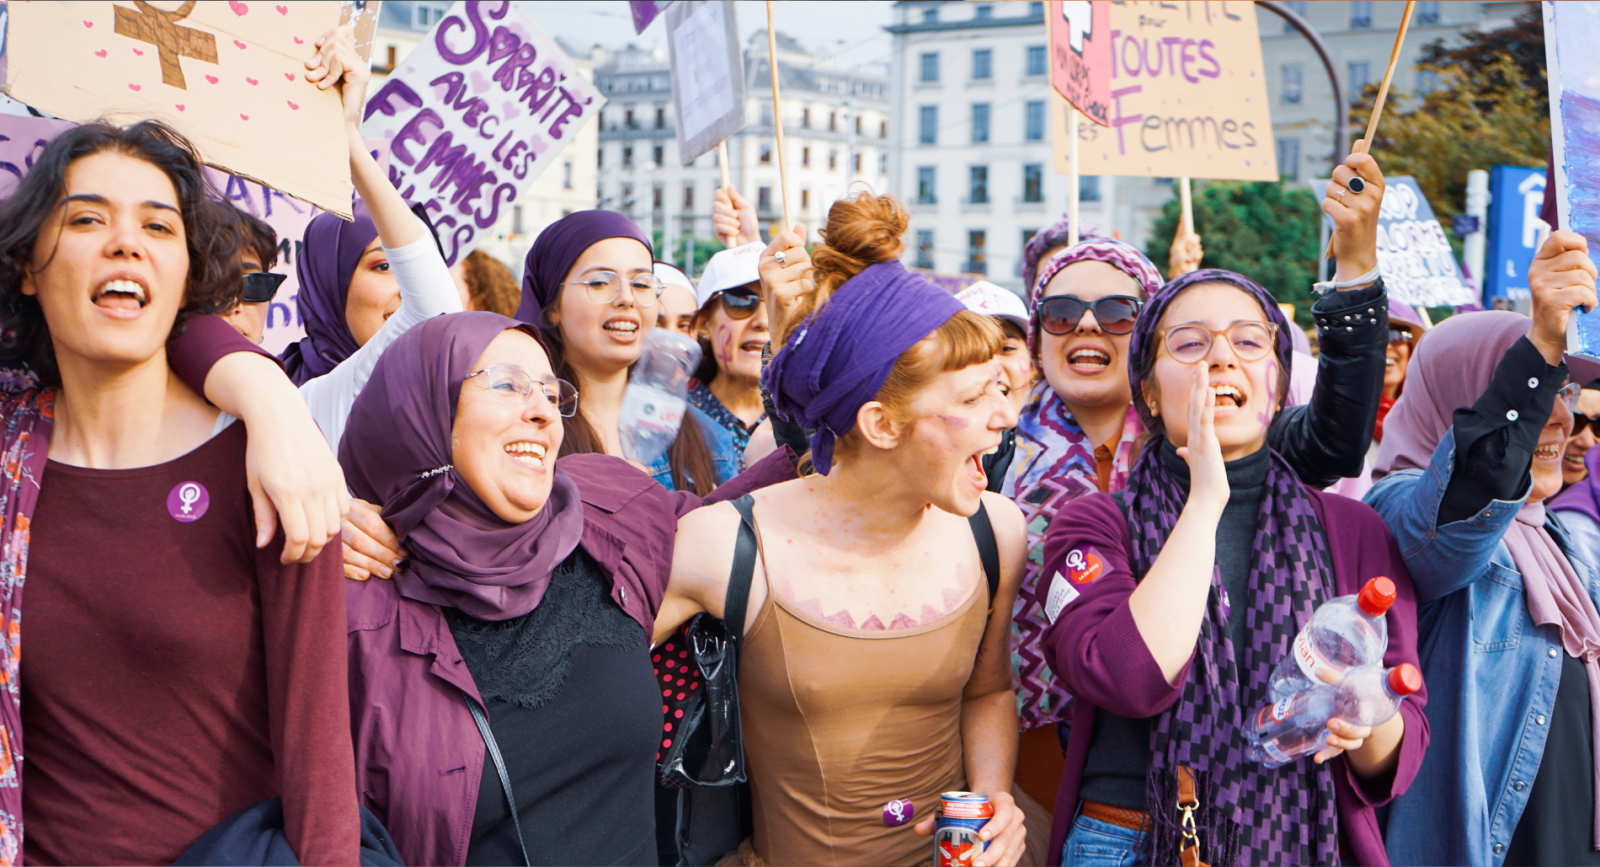 Members of 'Les Foulards Violets' (The Purple Scarves), a collective of Muslim and and non-Muslim women who stand in solidarity with those who wear the headscarf, at a protest in Geneva, Switzerland.